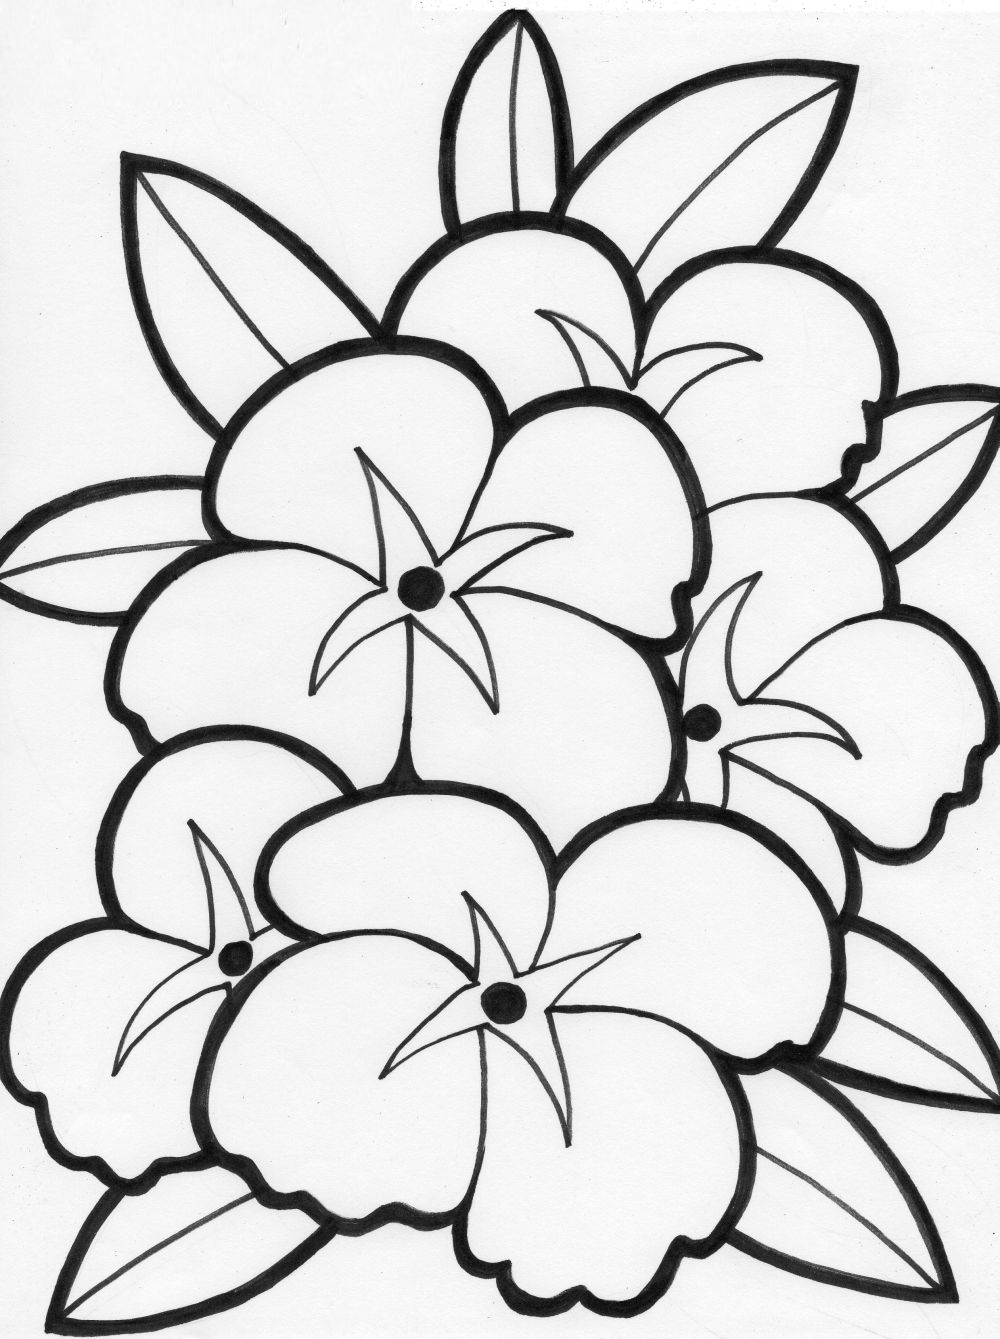 printable flower pictures flower template for children39s activities activity shelter printable pictures flower